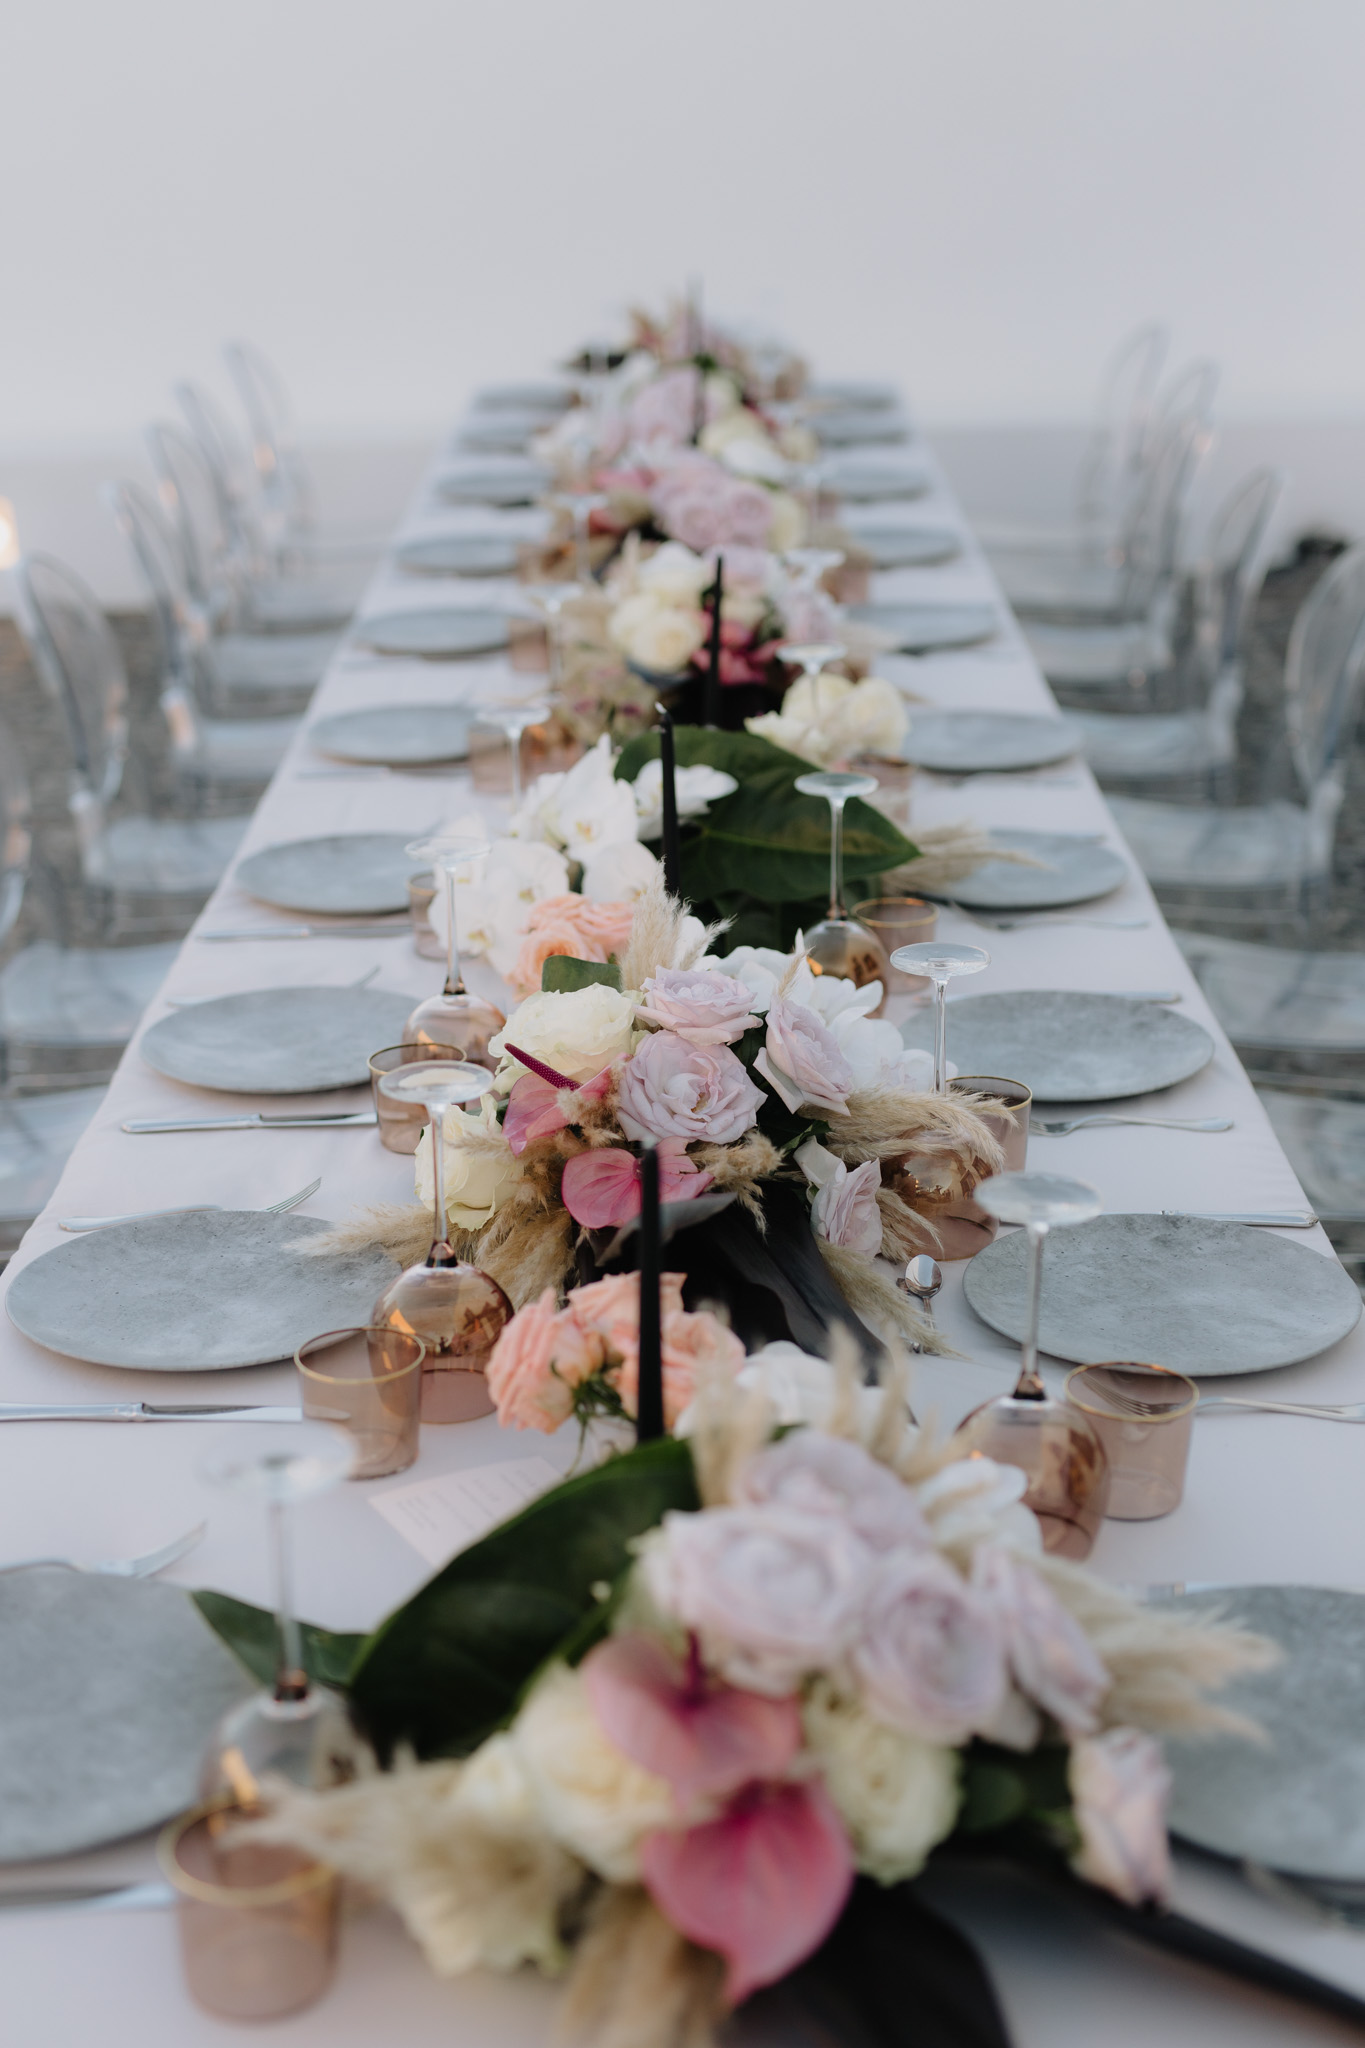 Santorini wedding photographer reception flowers table setting villa fabrica orchids dinner styling ghost chairs